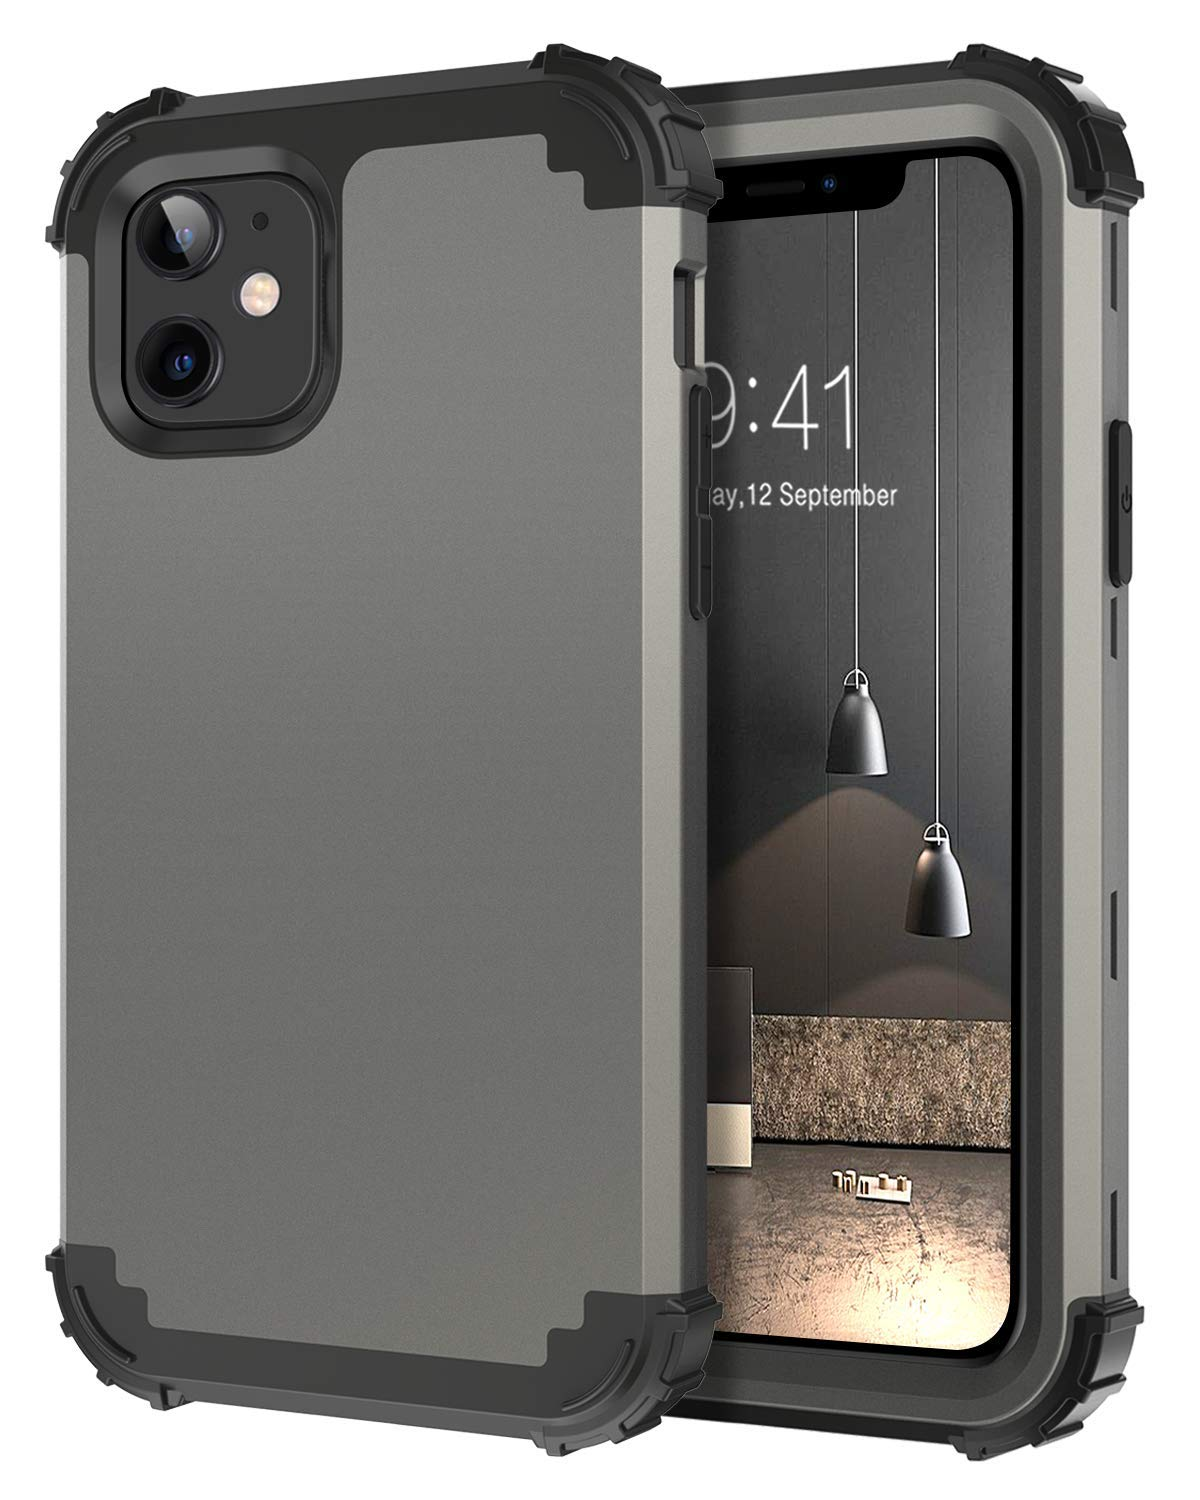 DUEDUE iPhone 11 Case, Shockproof Heavy Duty Rugged Drop Protection 3 in 1 Hybrid Hard PC Covers Soft Silicone Bumper Full Body Protective Case for iPhone 11 6.1 inch(2019), Gunmetal